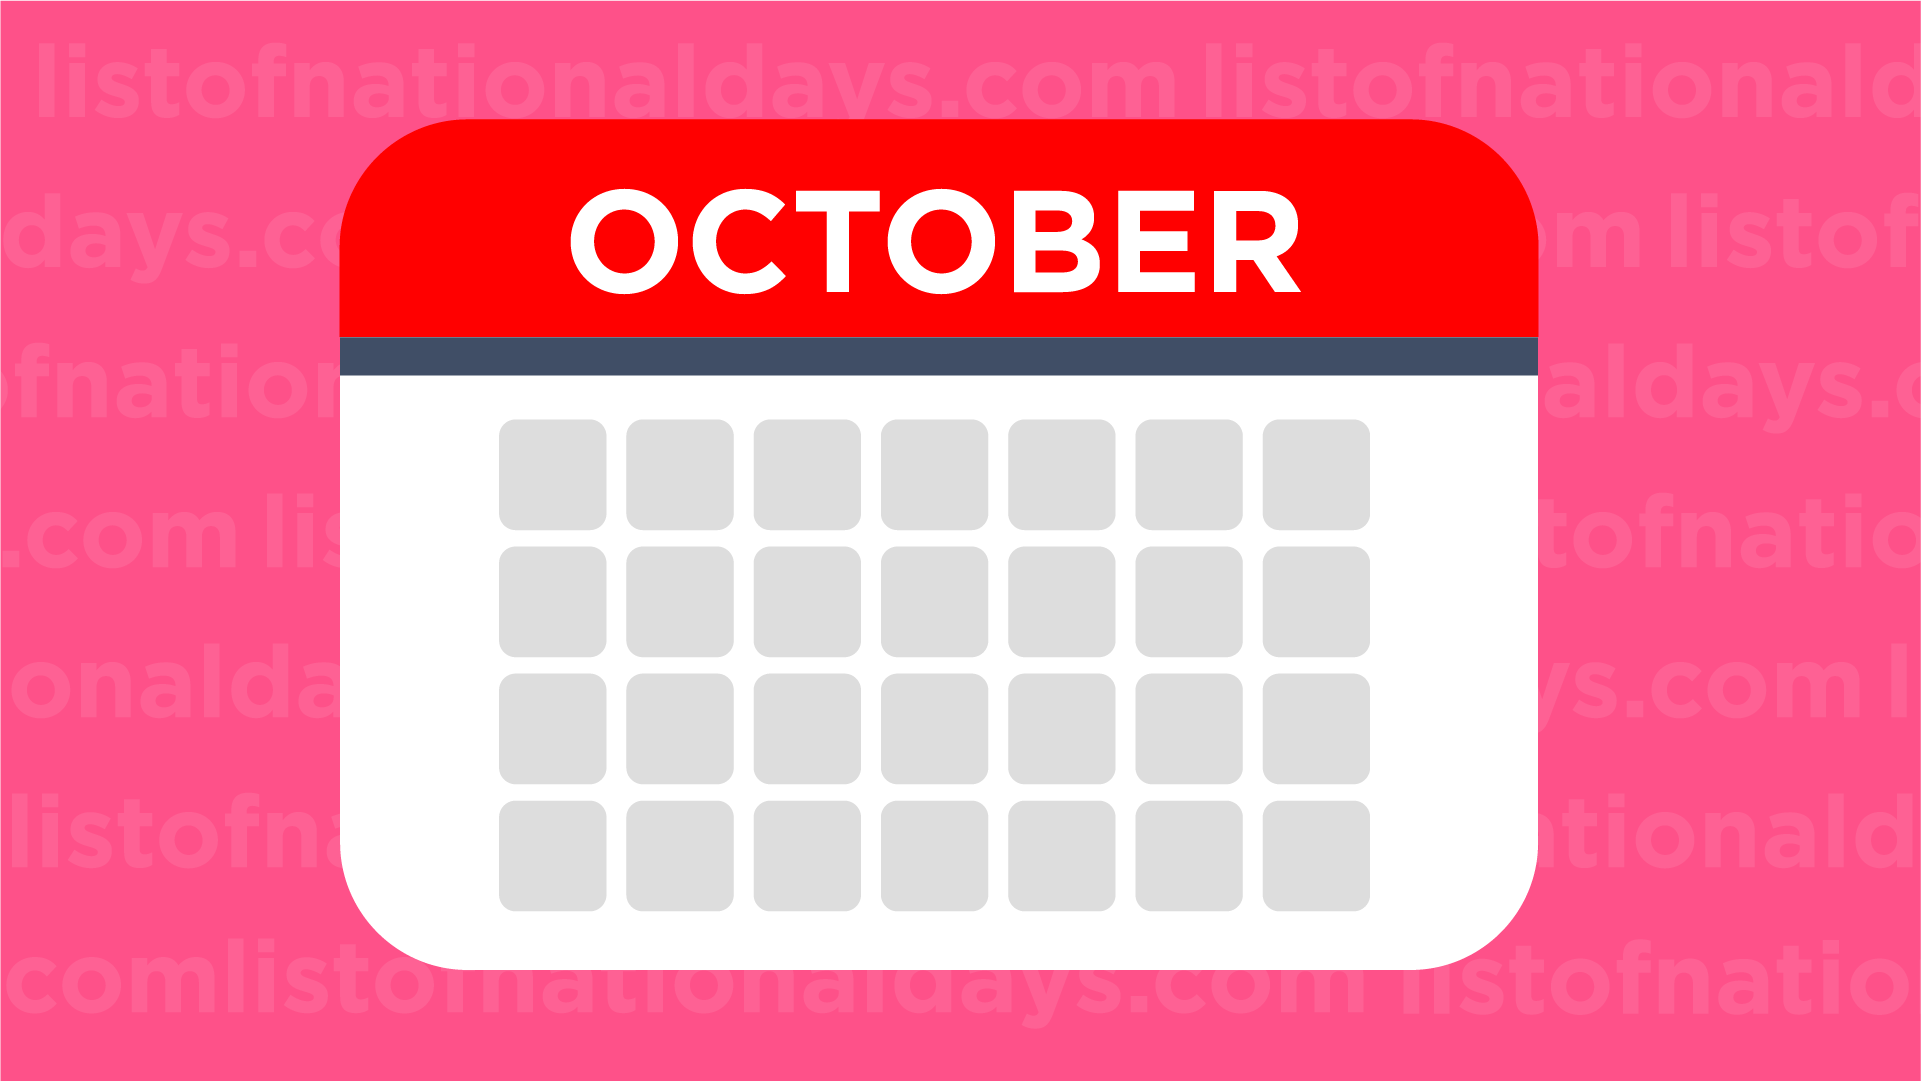 October List Of National Days